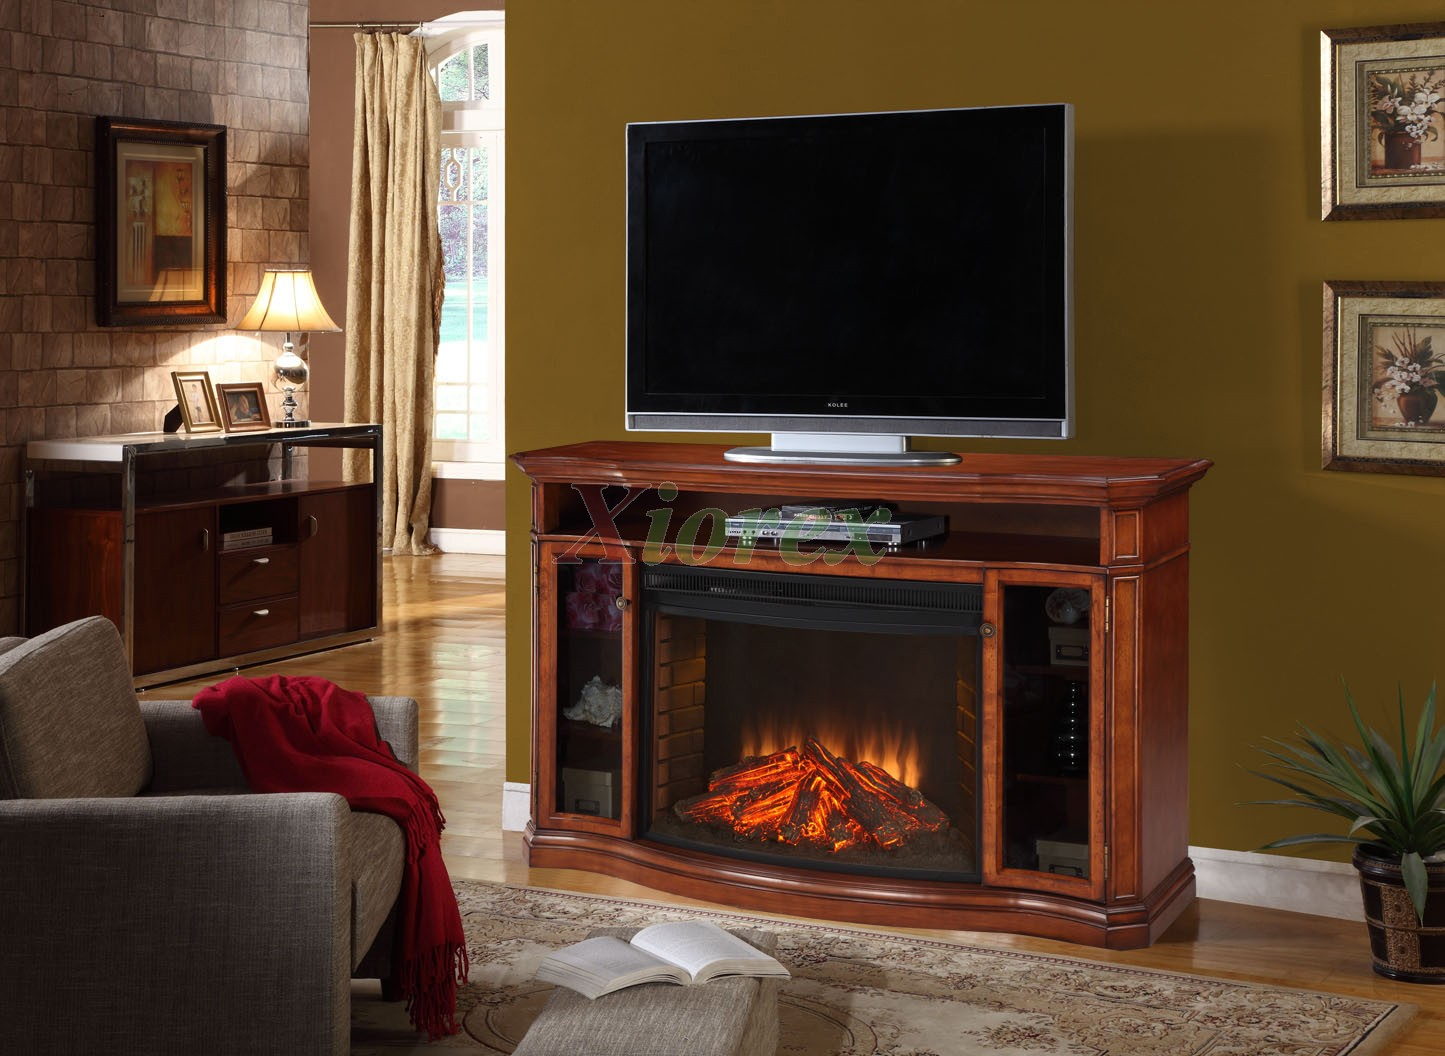 plus with ga stands along your tv as right image black merrick fireplaces is value wells double cabinet pleasing furniture decors home city stand house insert fireplace electric